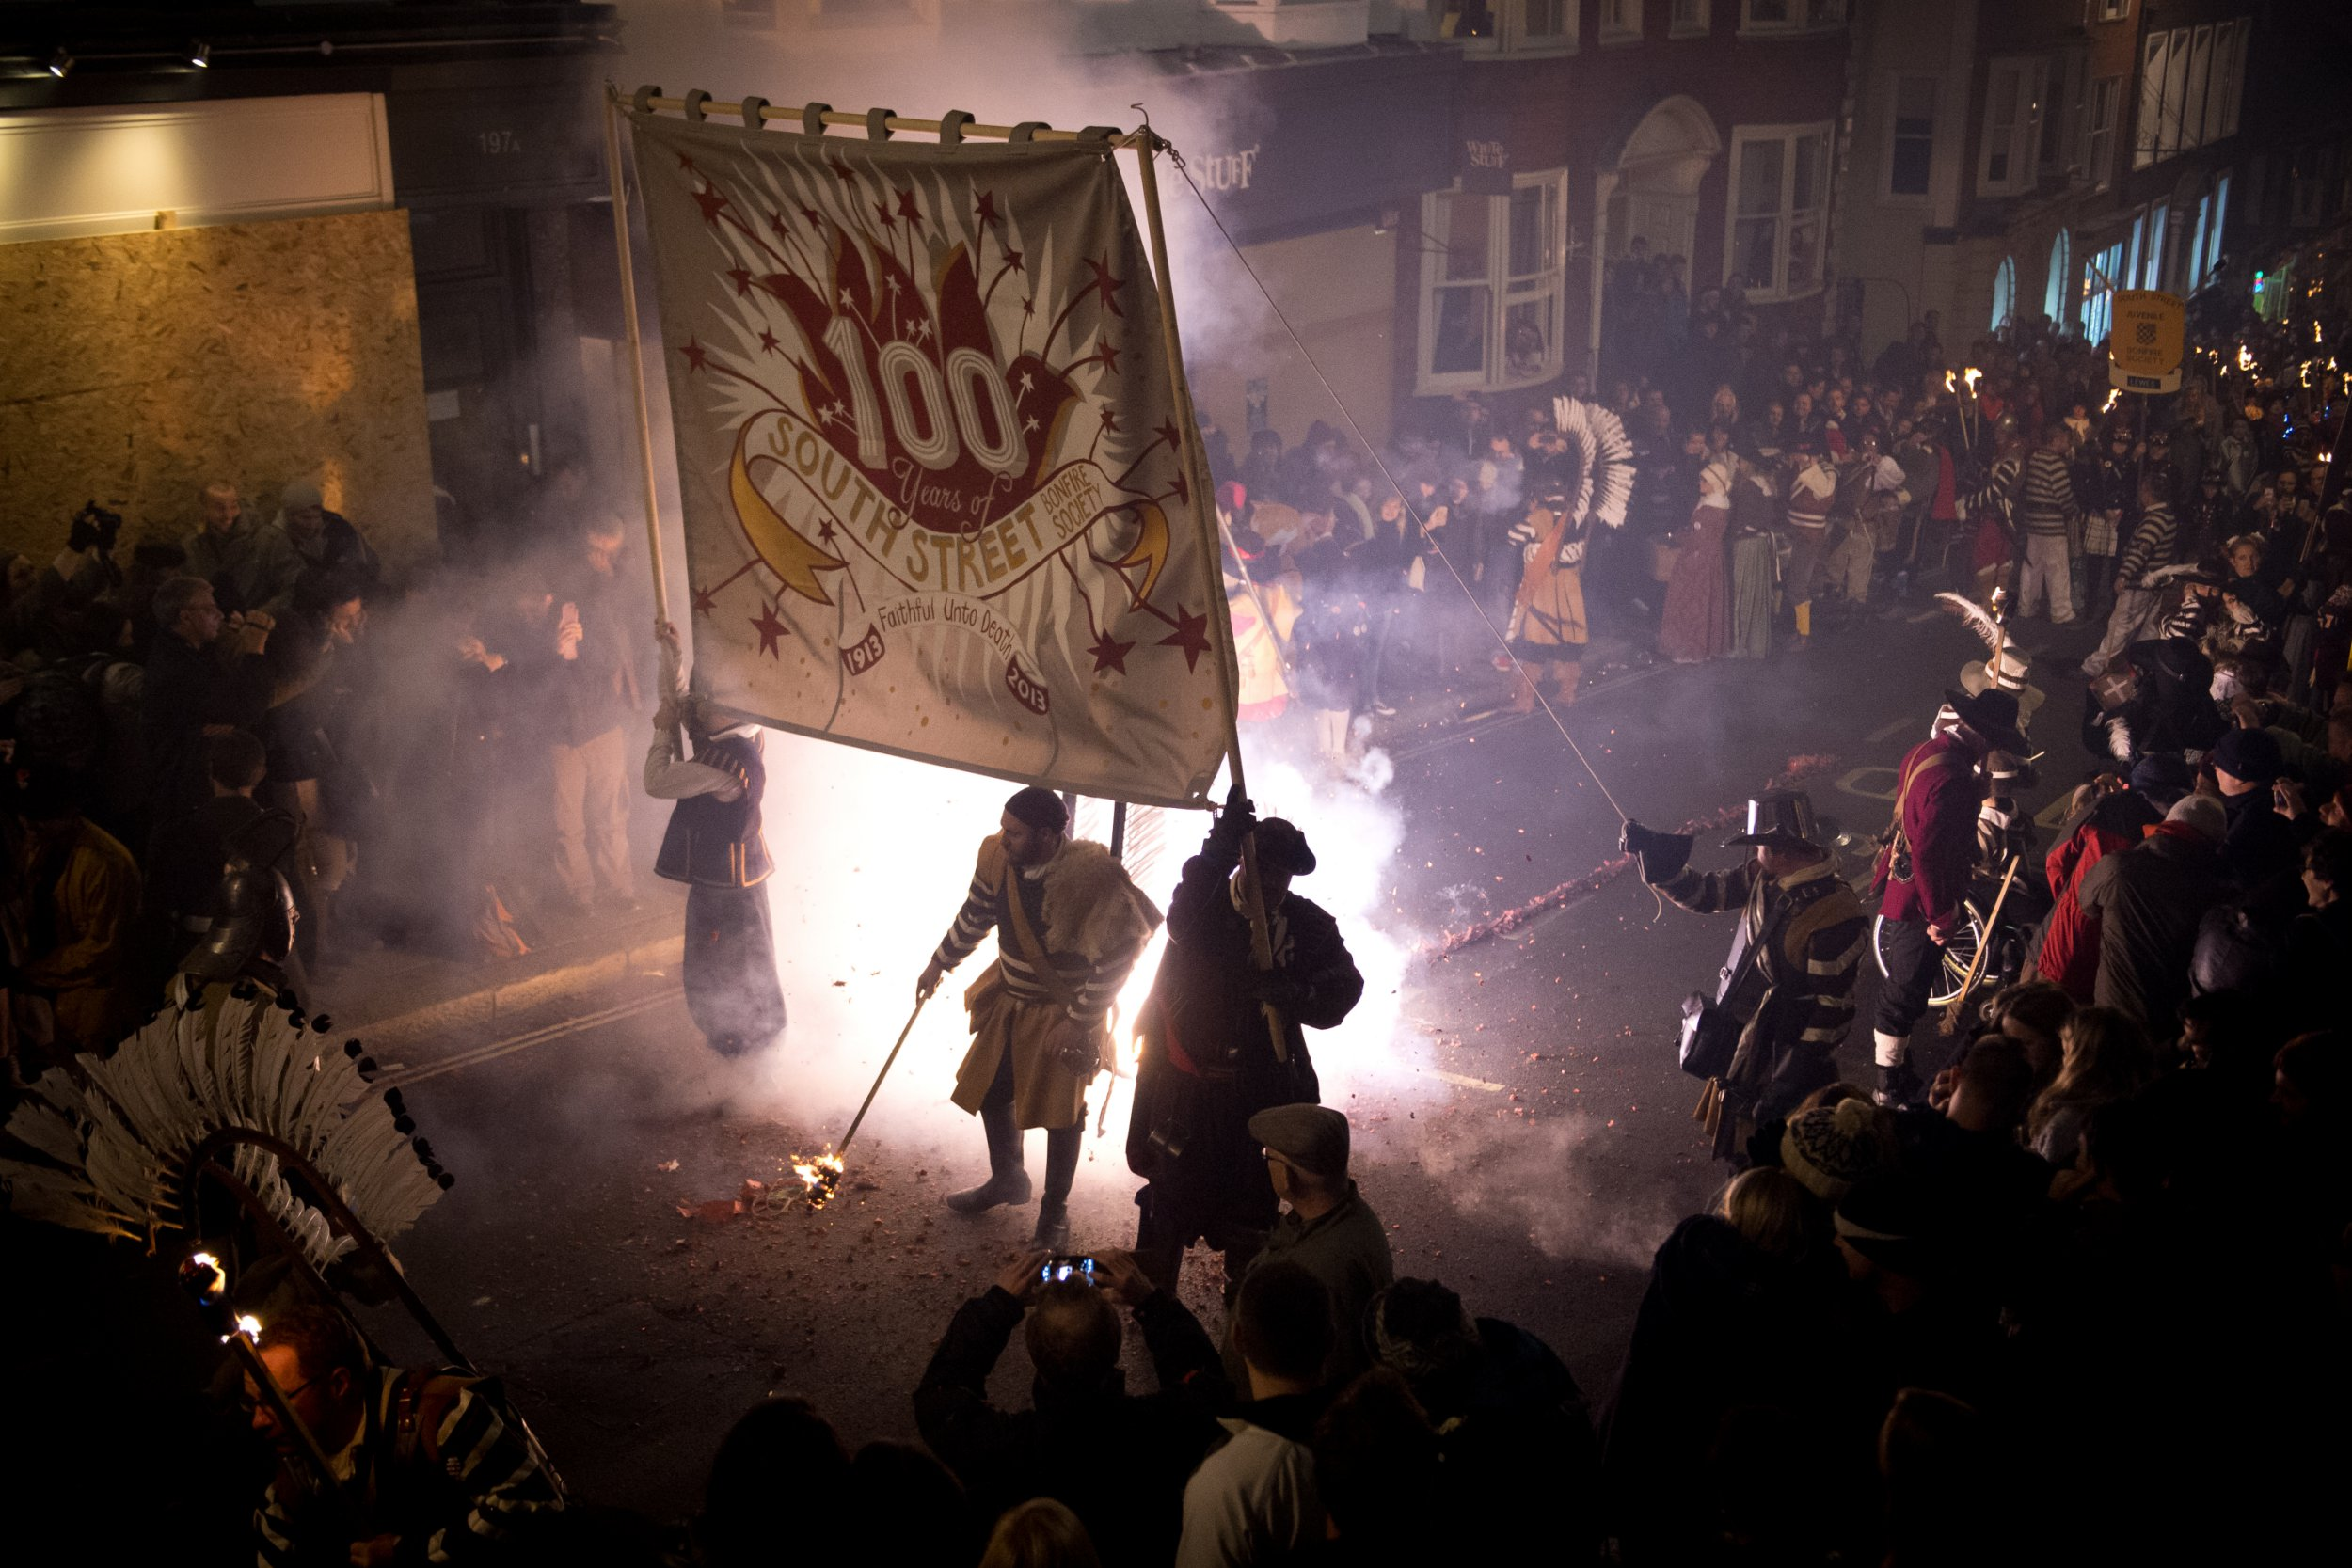 Lewes bonfire celebrations: When and where is the biggest 5th of November event in the world?